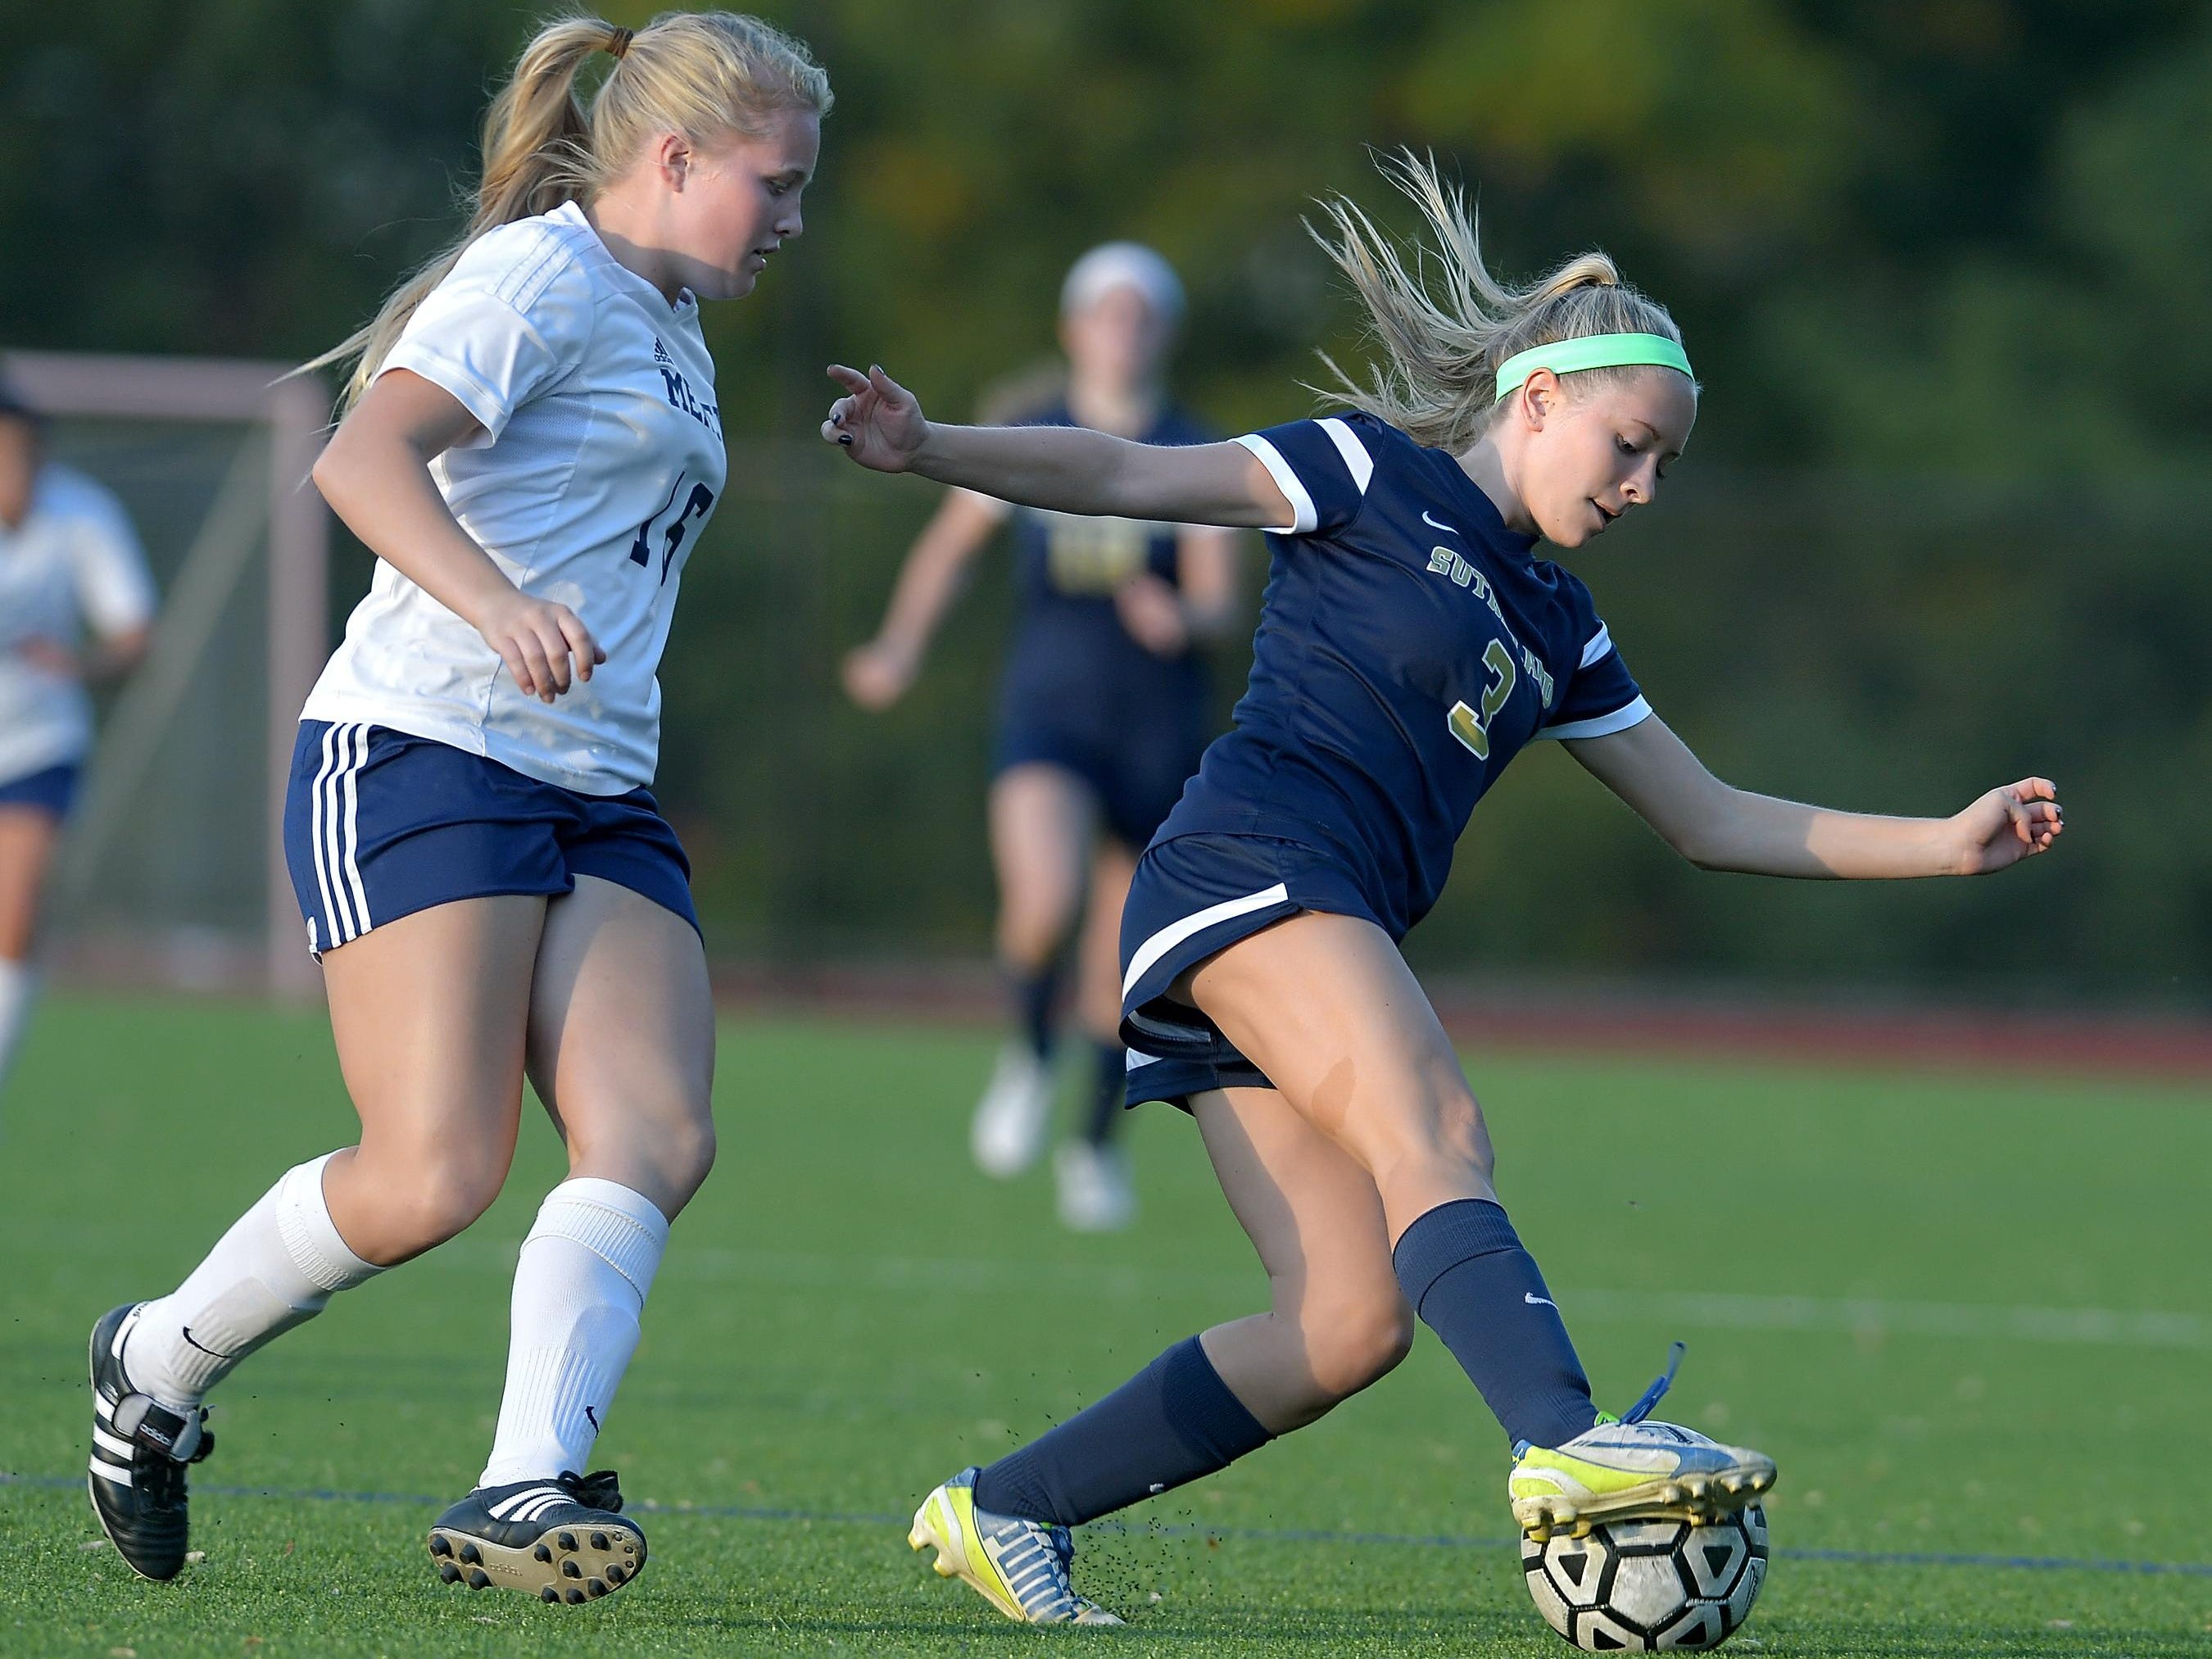 Pittsford Sutherland's Julia Stone, right, turns the ball away from Mercy's Ingrid Donnan.